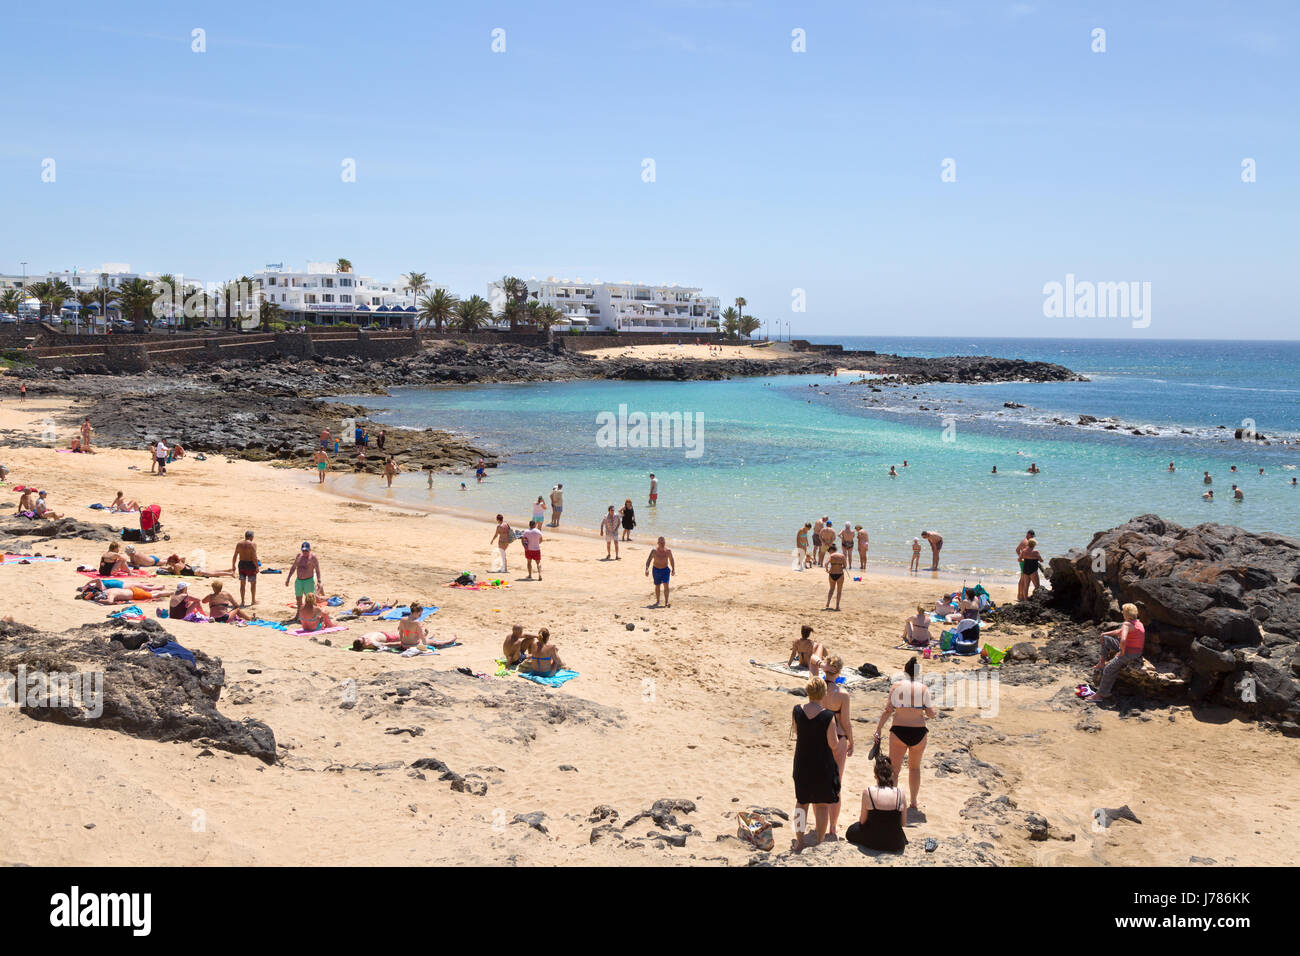 Lanzarote Beach People On The Beach At Playa Bastian Costa Teguise East Coast Lanzarote Canary Islands Europe